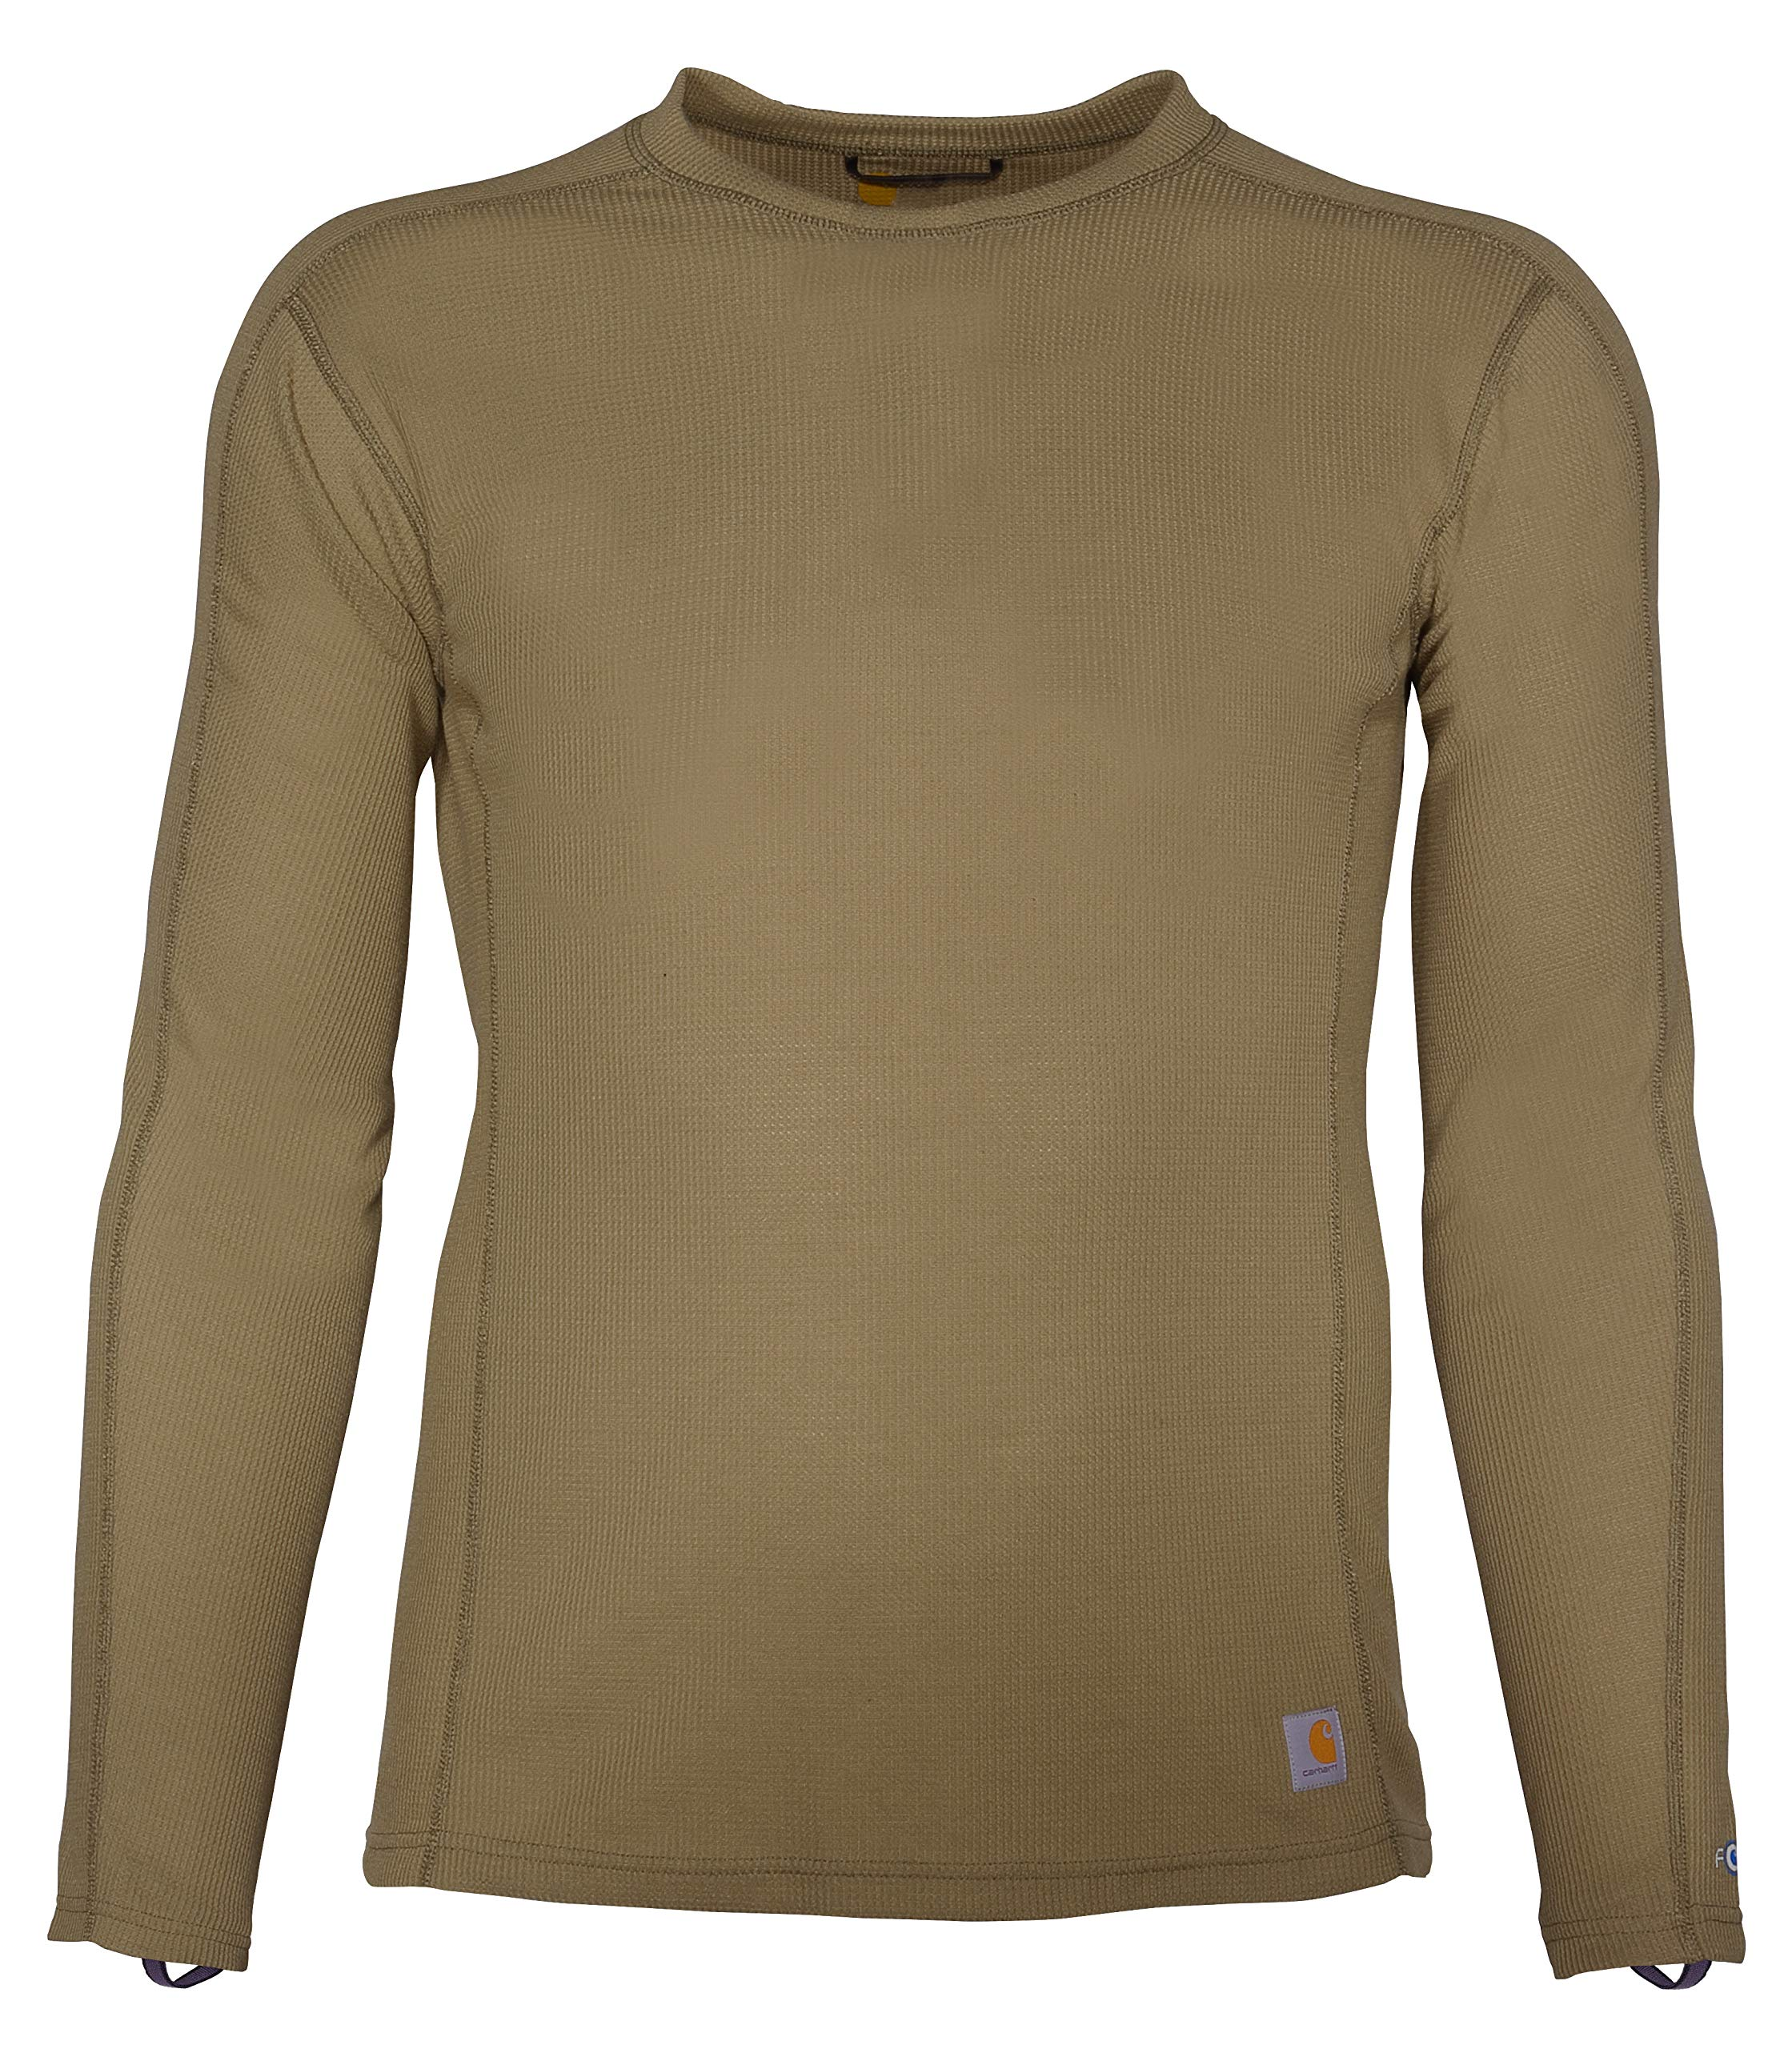 Carhartt Men's Size Force Midweight Classic Thermal Base Layer Long Sleeve Shirt, Burnt Olive, 3X-Large Tall by Carhartt